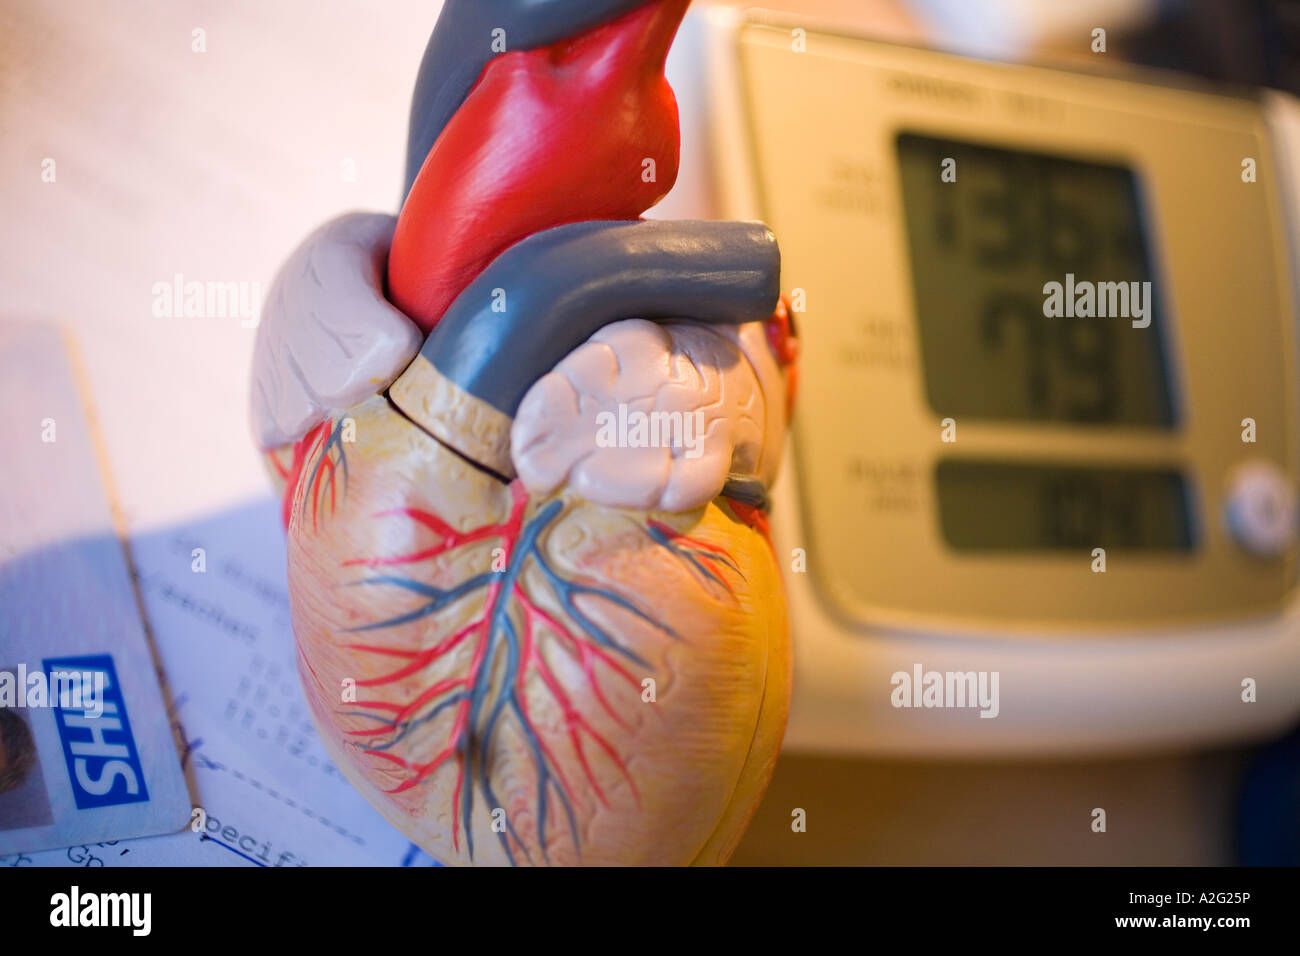 Electronic Sphygmomanometer scale model of heart close-up close up closeup of medical instrument nhs - Stock Image